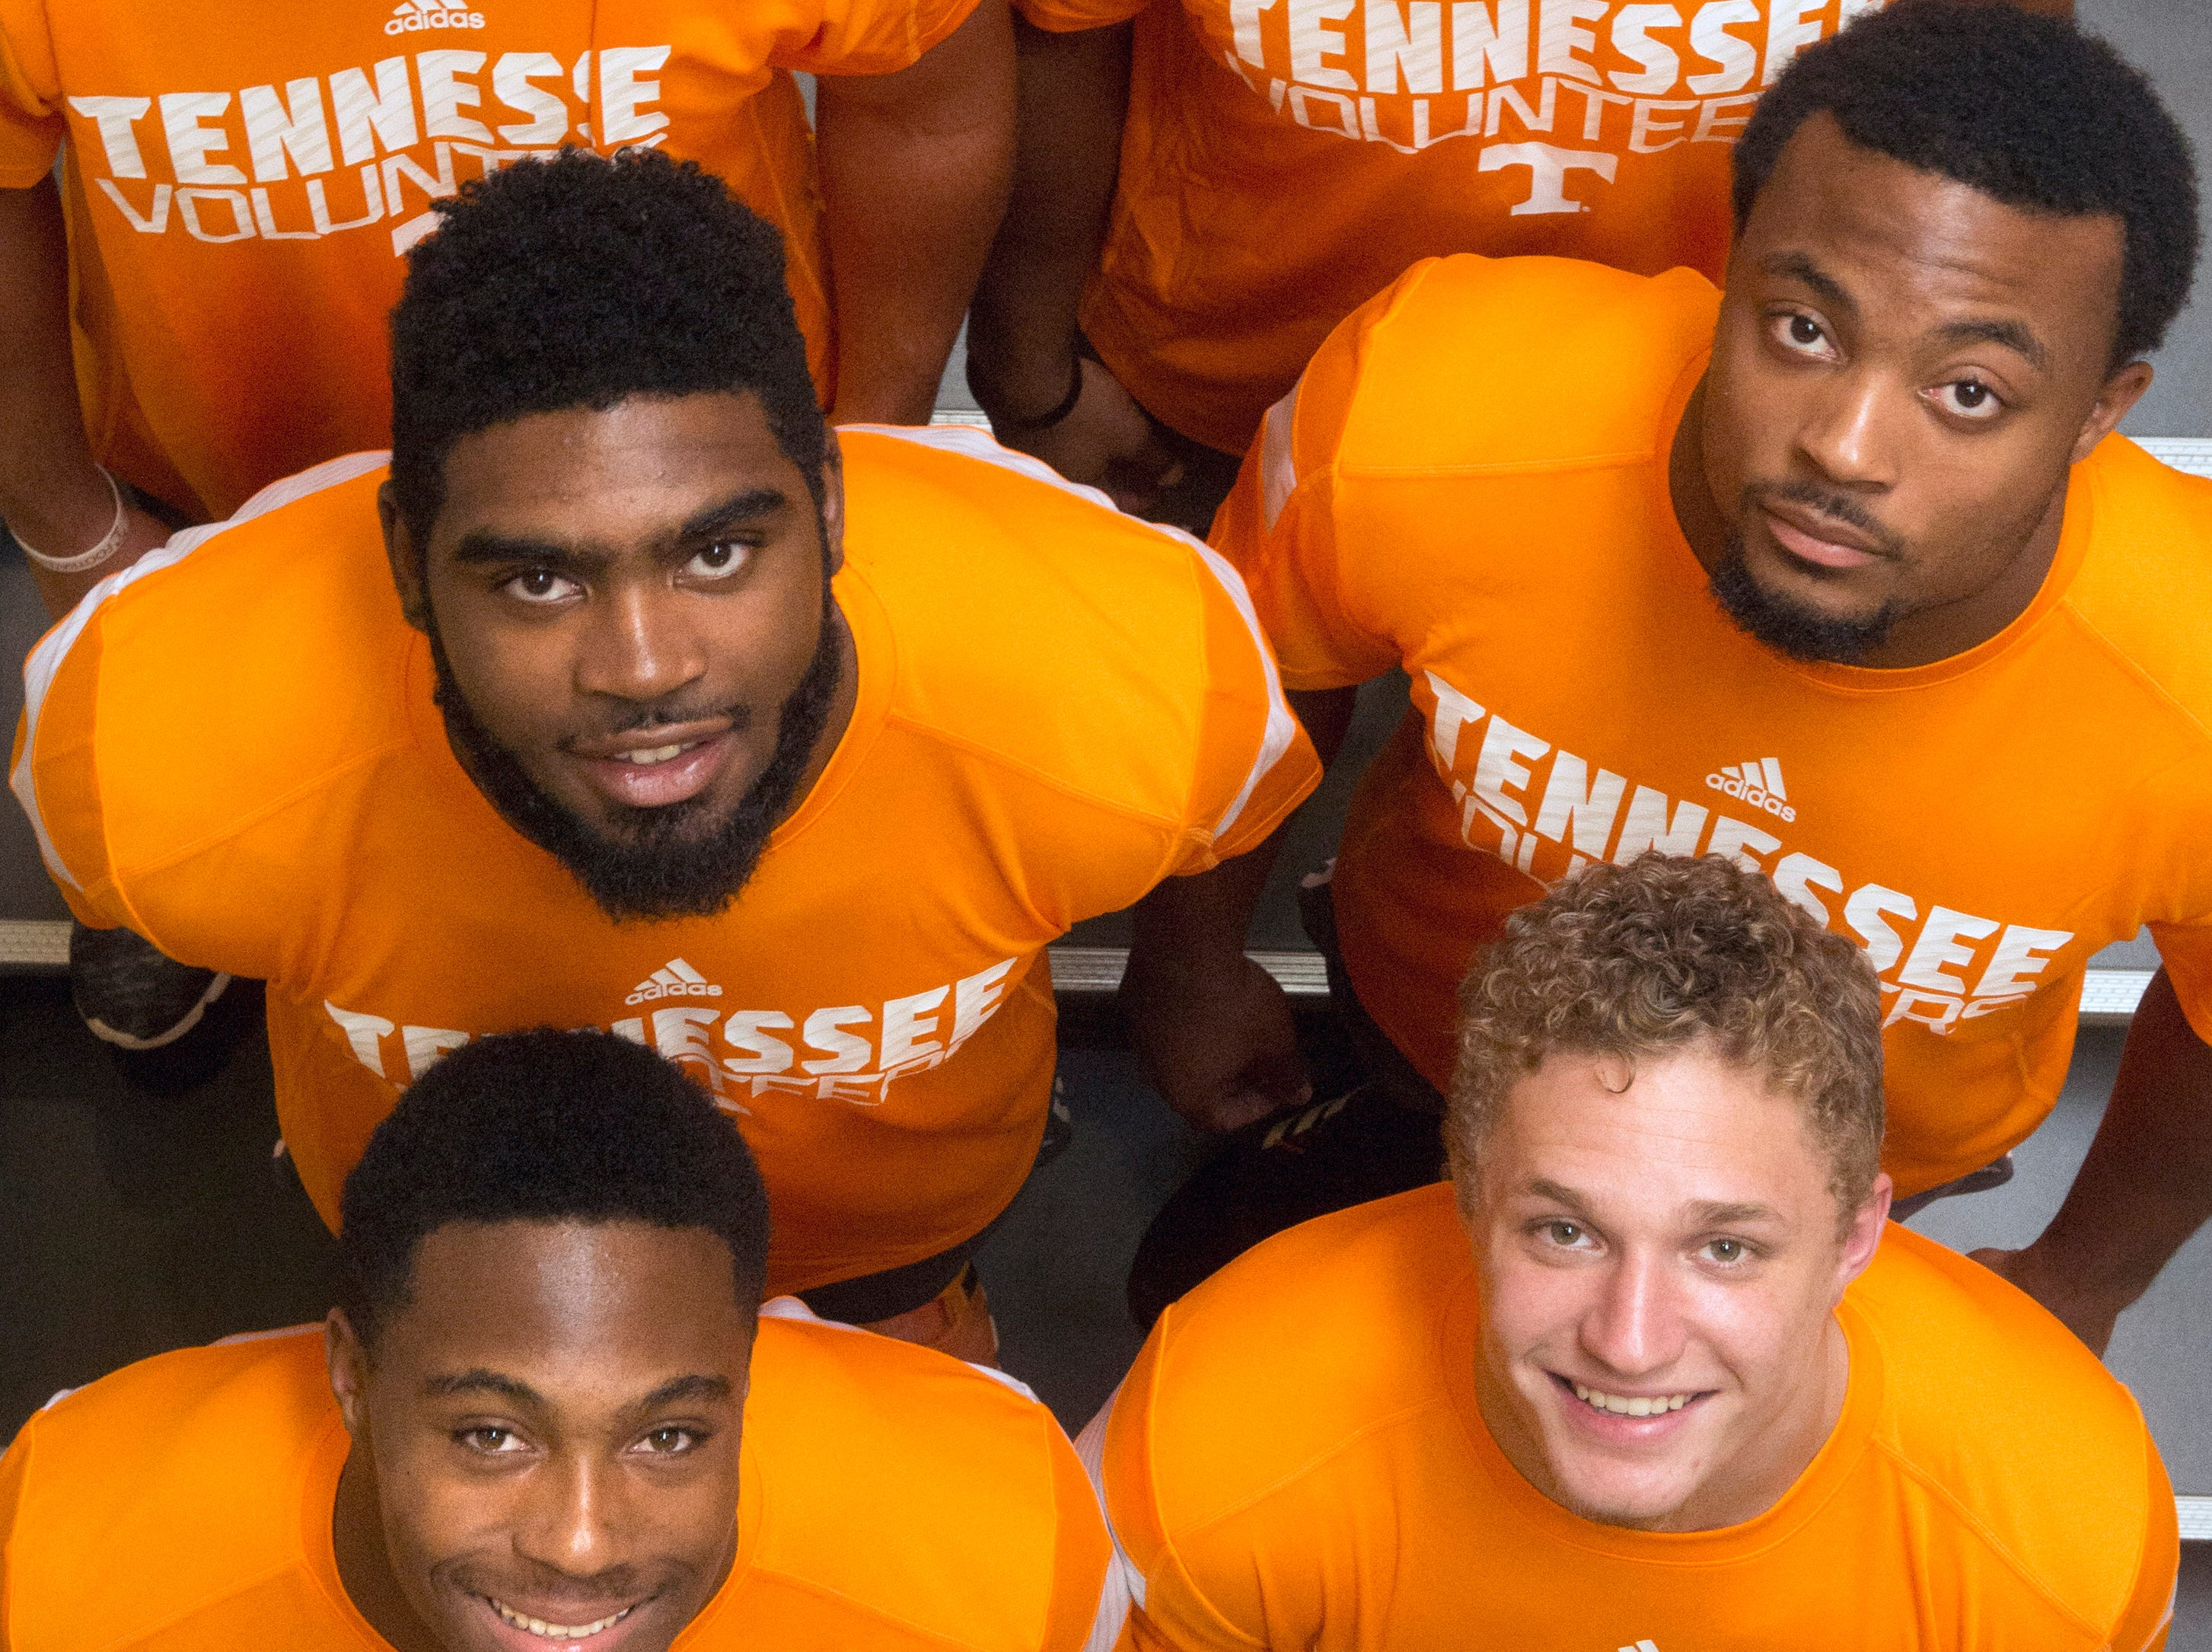 Tennessee football team freshmen, clockwise from top left, Dillon Bates, Todd Kelly, Jr., Elliot Berry, Vic Wharton, Evan Berry, and Neiko Creamer pose for a portrait at the University of Tennessee Anderson Training Center in Knoxville on Friday, July 18, 2014. (ADAM LAU/NEWS SENTINEL)